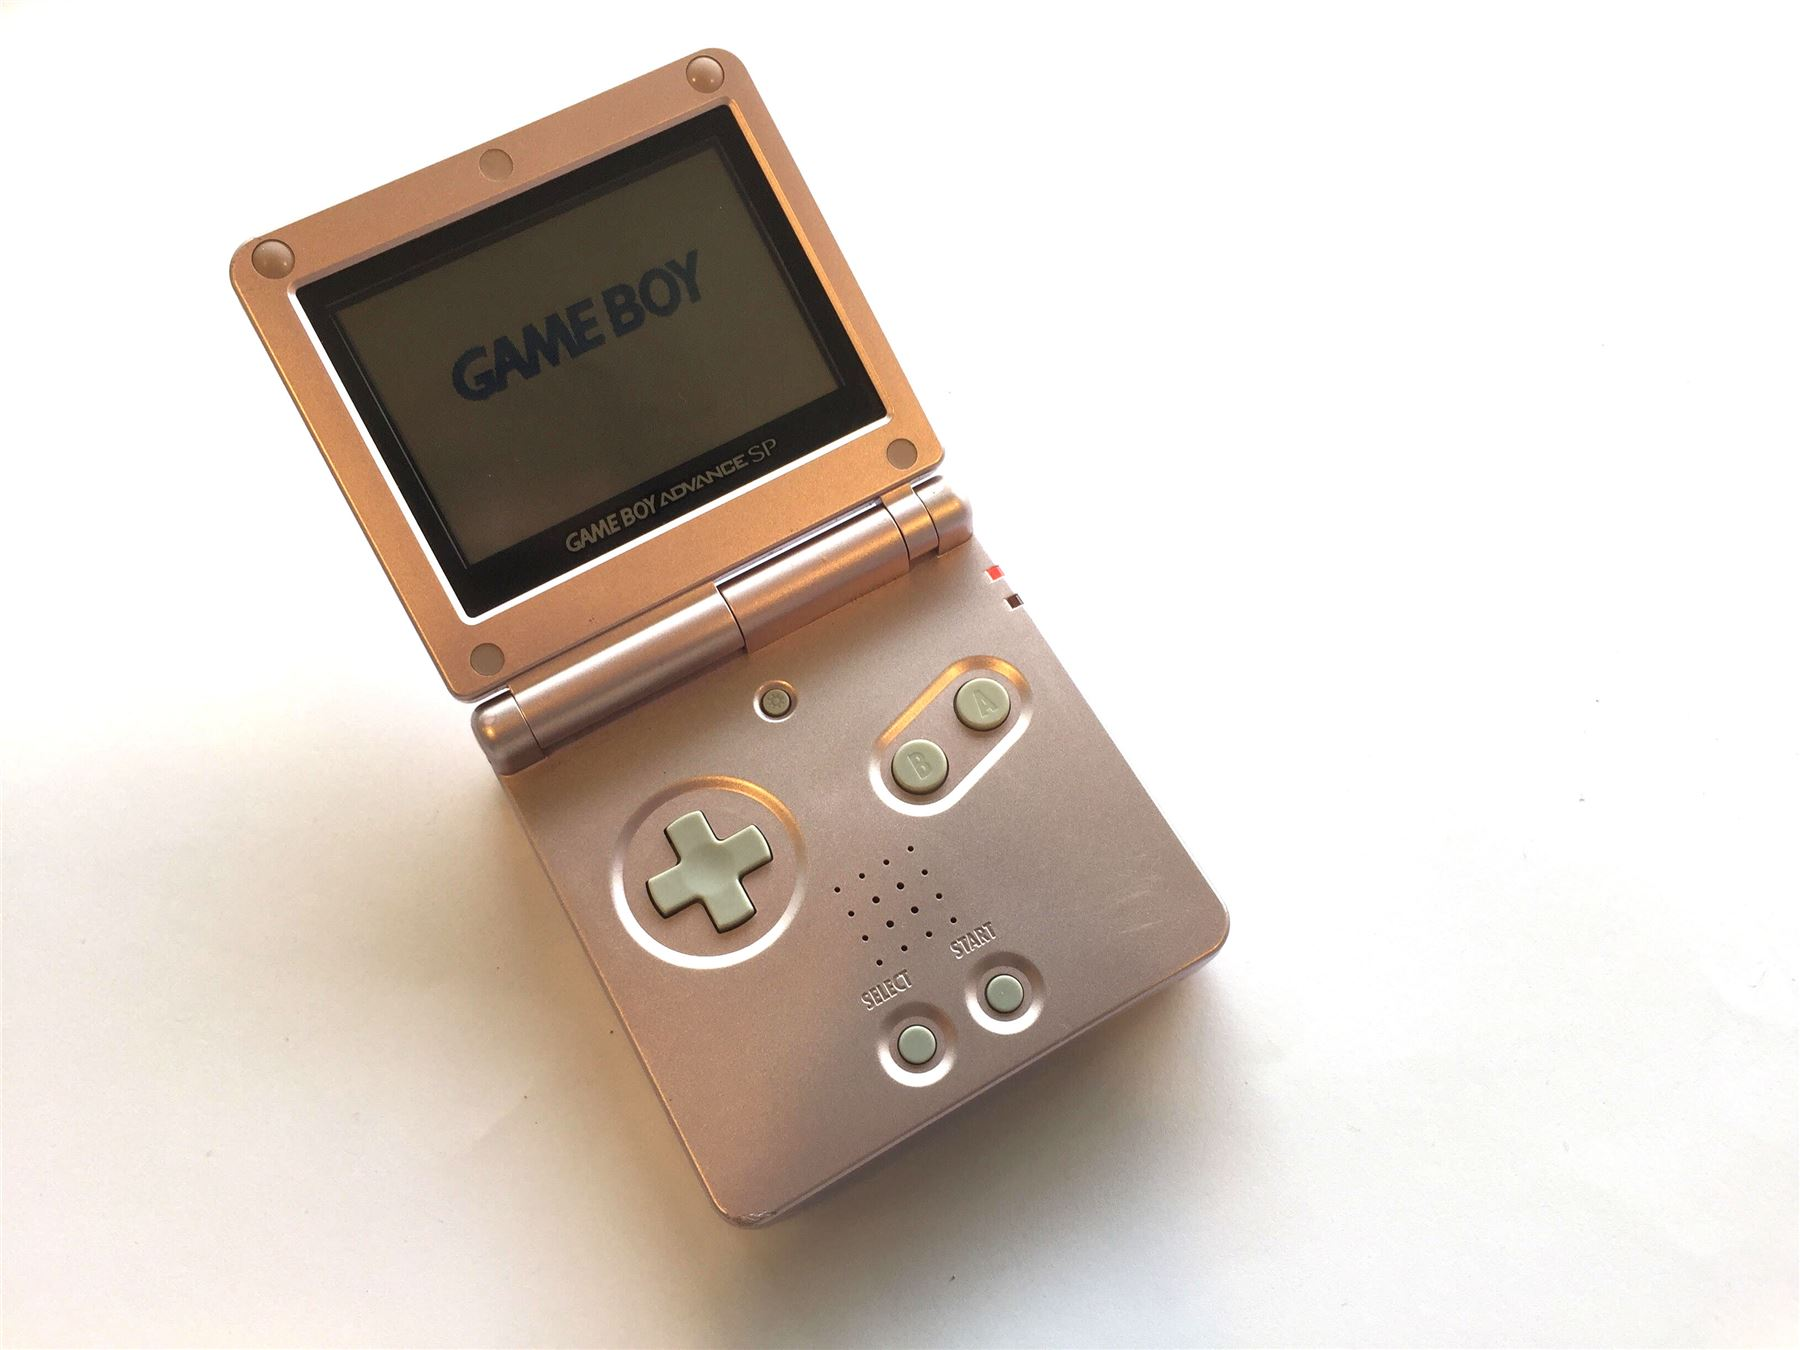 Nintendo-Gameboy-SP-Game-Boy-Advance-GBA-Console-System-6-Colour-Options thumbnail 35